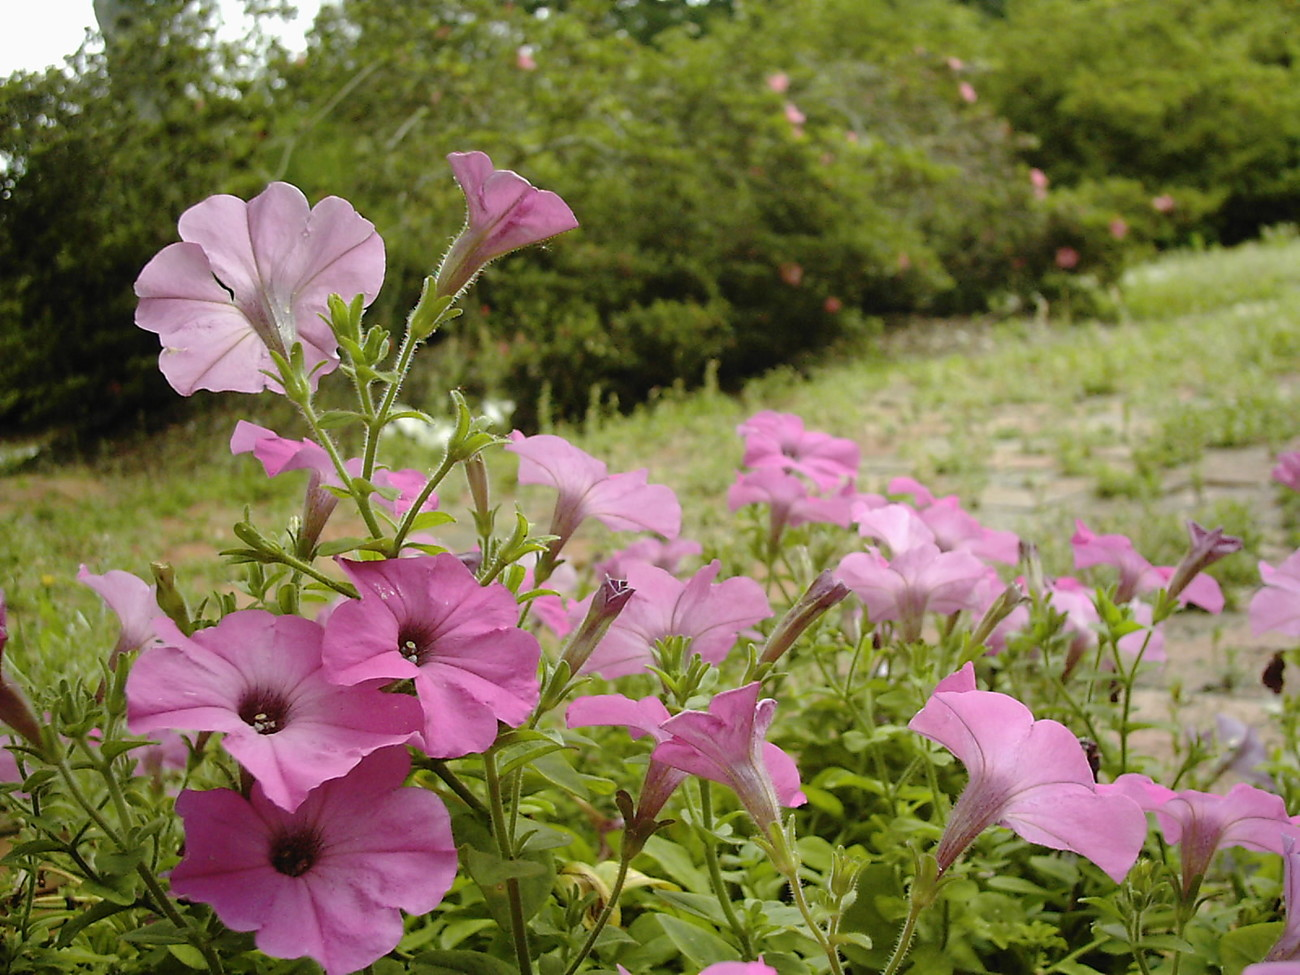 *** Petunia * by calico_jester